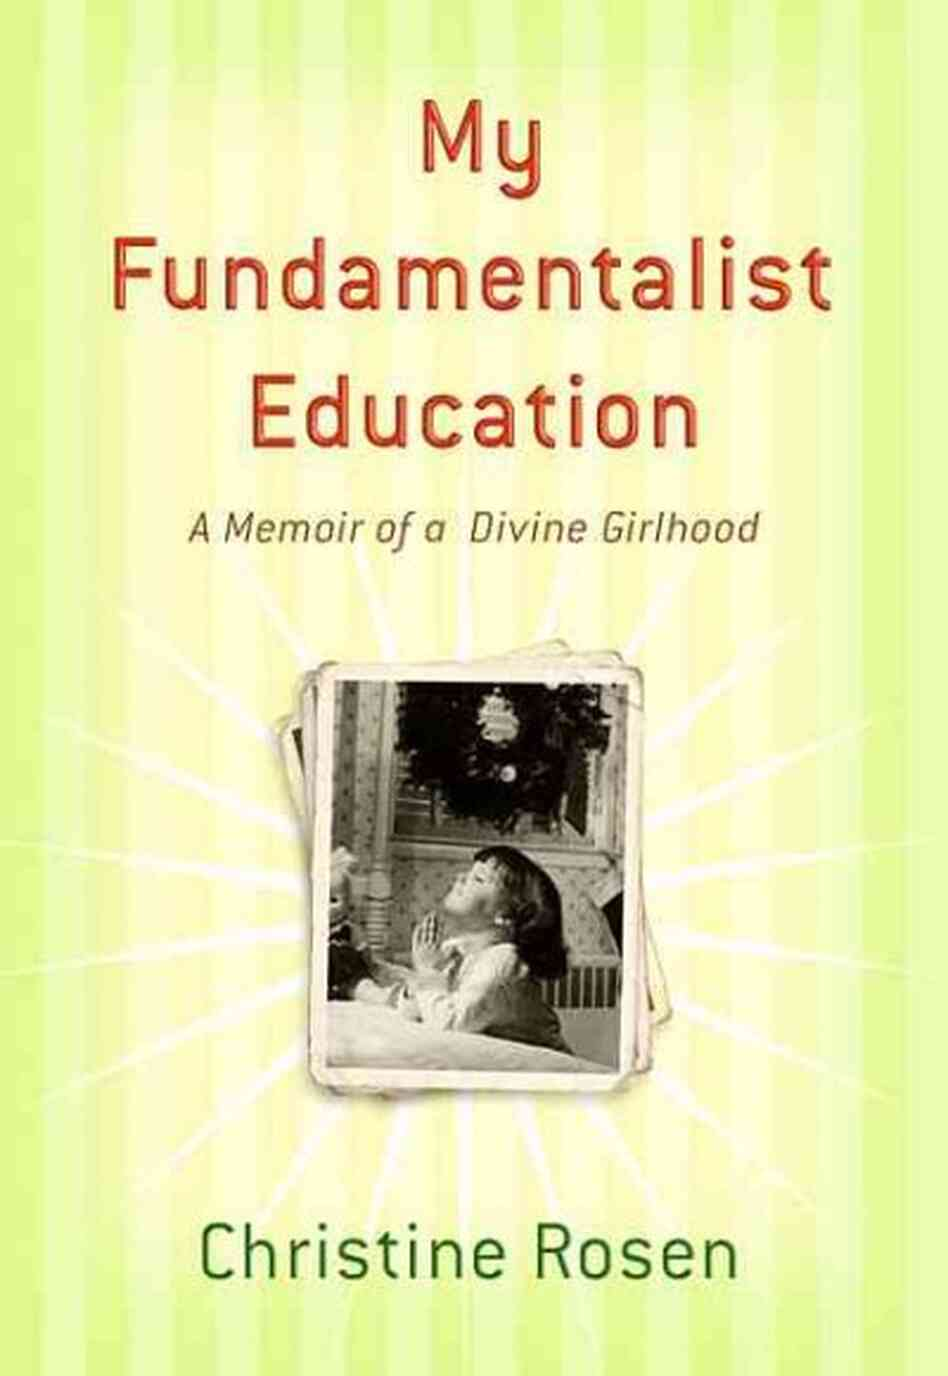 My Fundamentalist Education